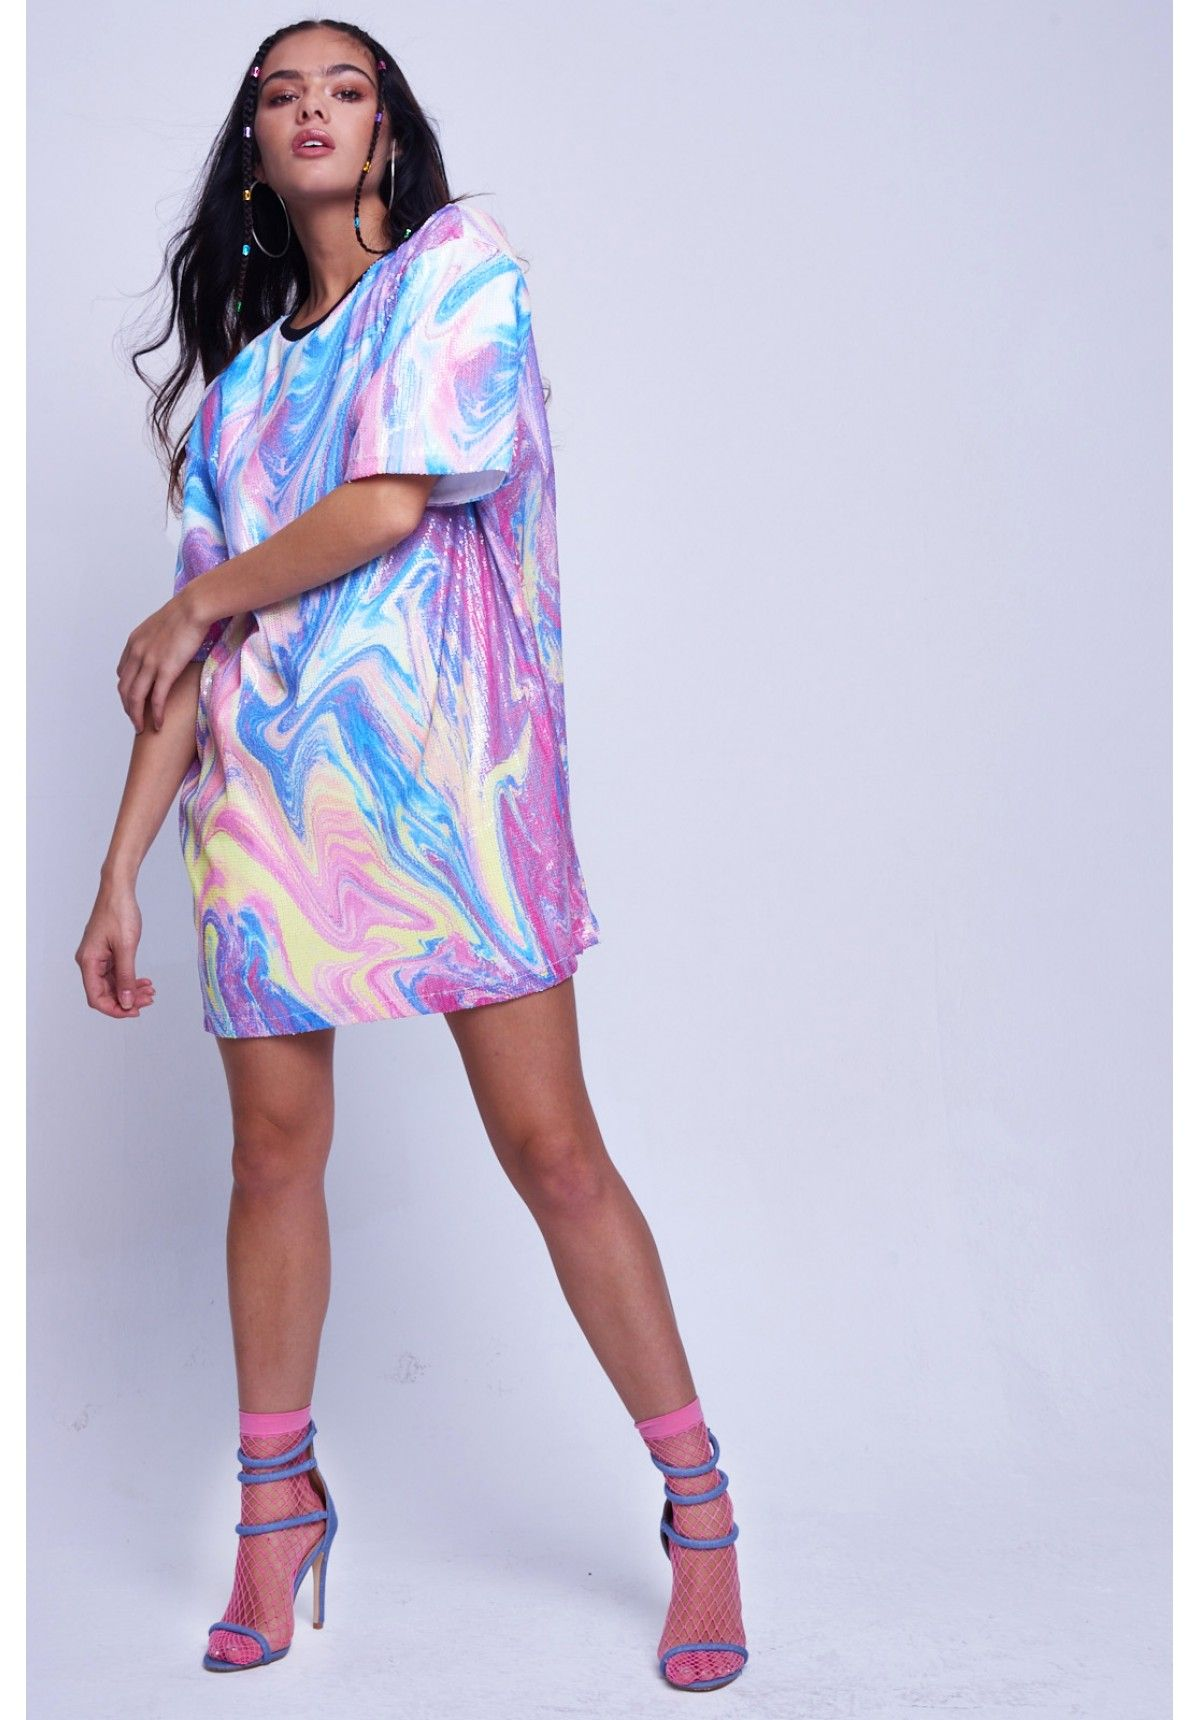 d993d66f Marble Sequin Oversized T-shirt Dress | Electric Looks | Oversized t ...